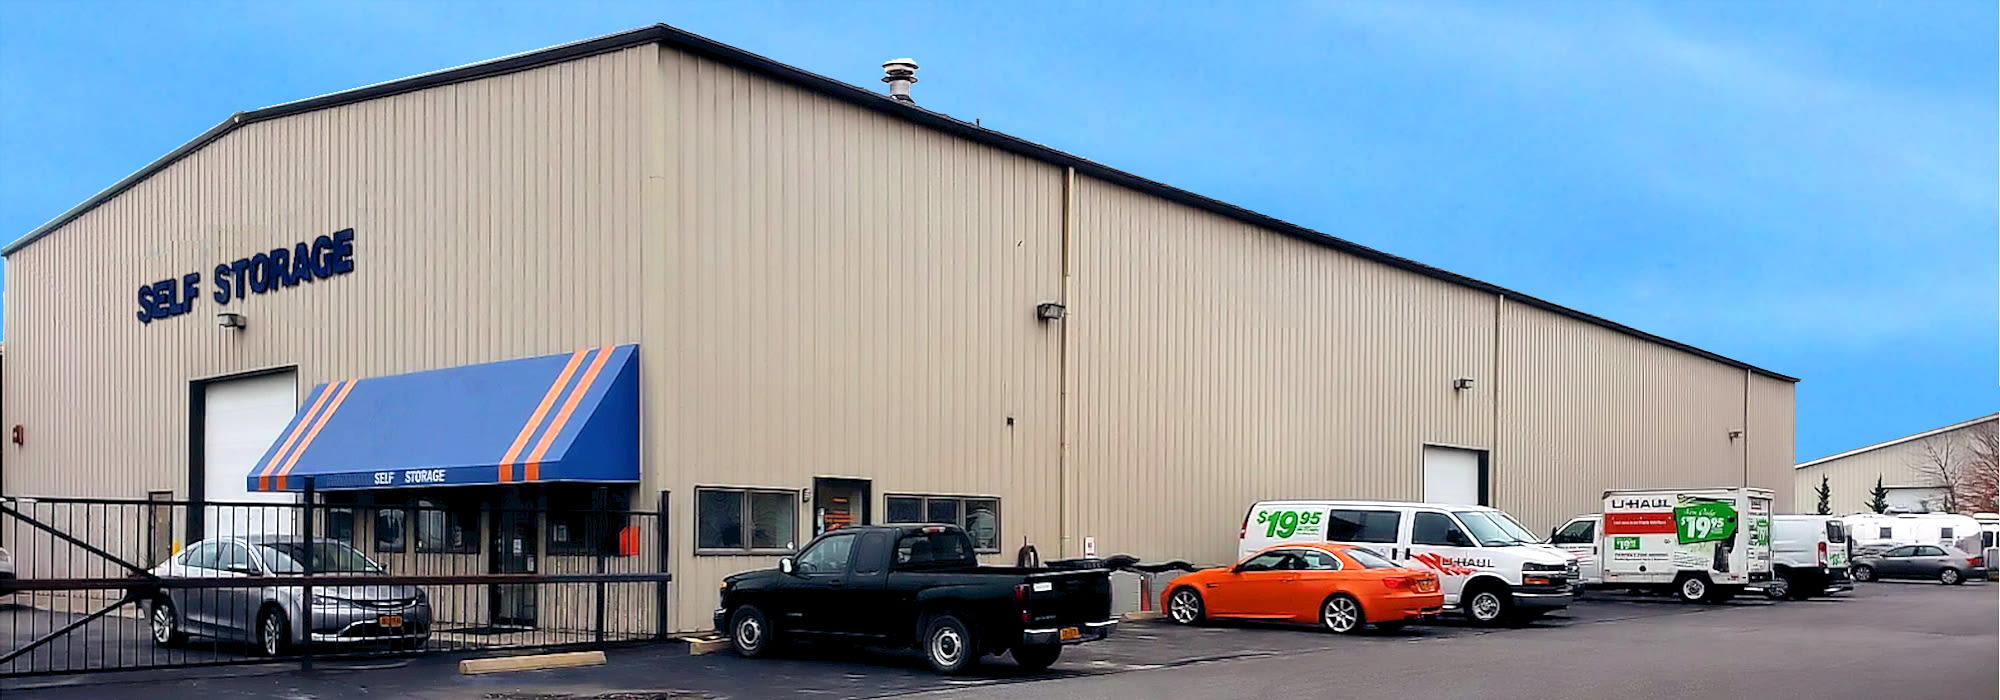 Prime Storage in Bridgehampton, New York